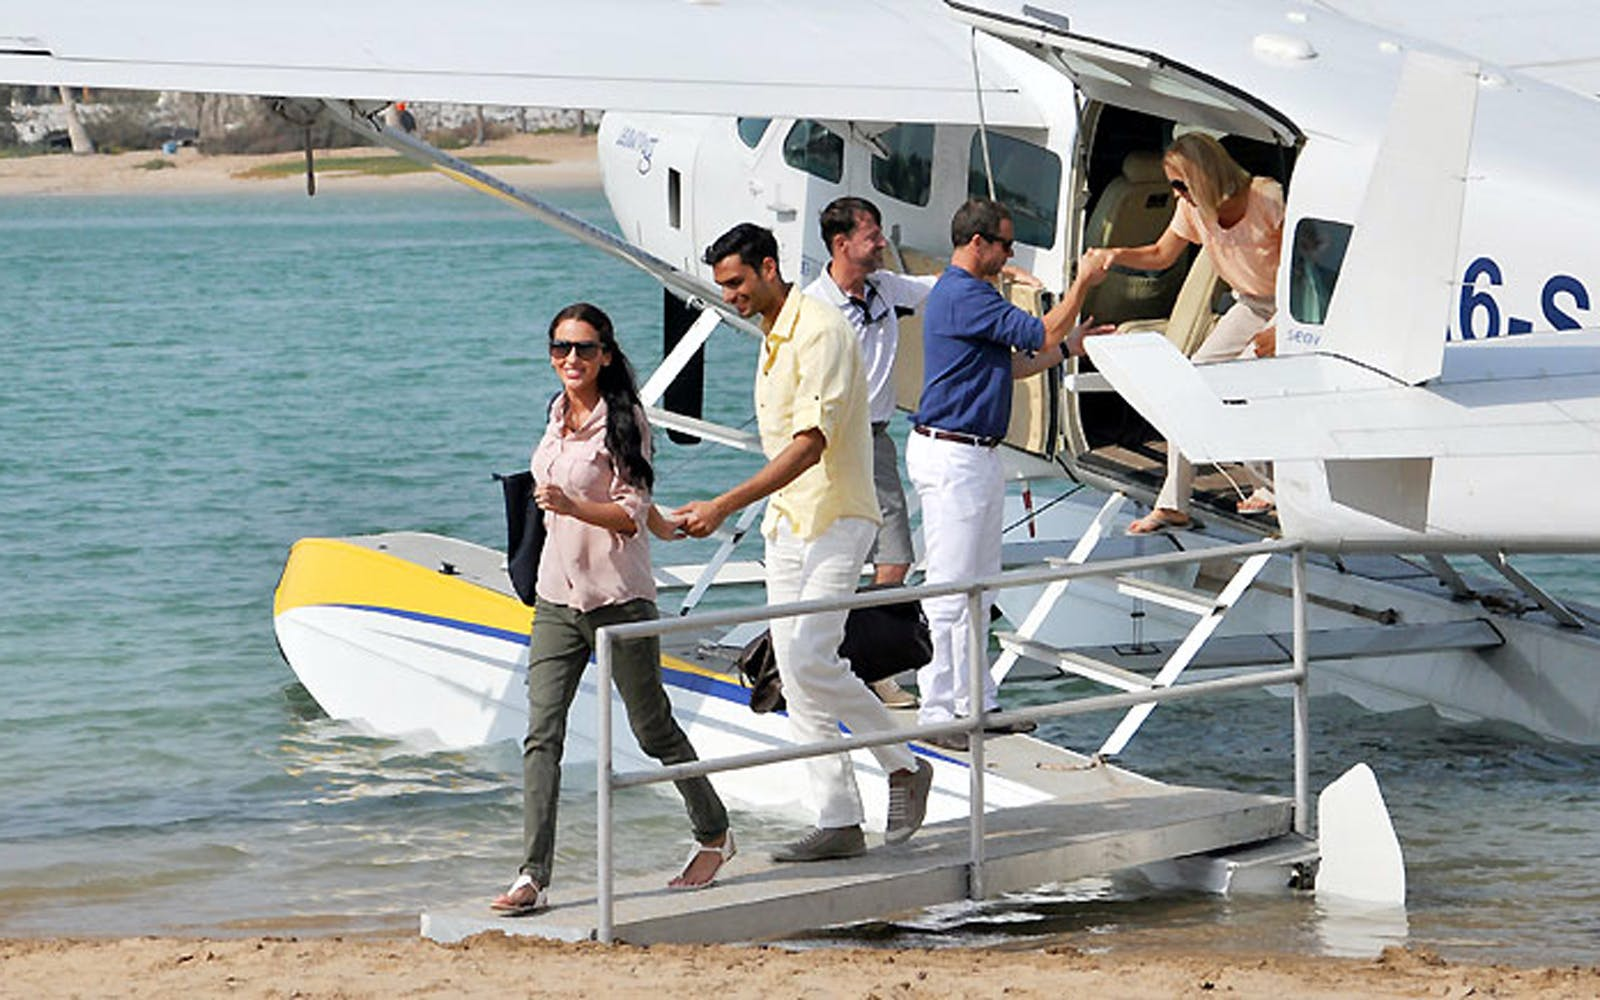 Seaplane Tour and Banyan Tree Escape (Dubai to Ras Al Khaimah)